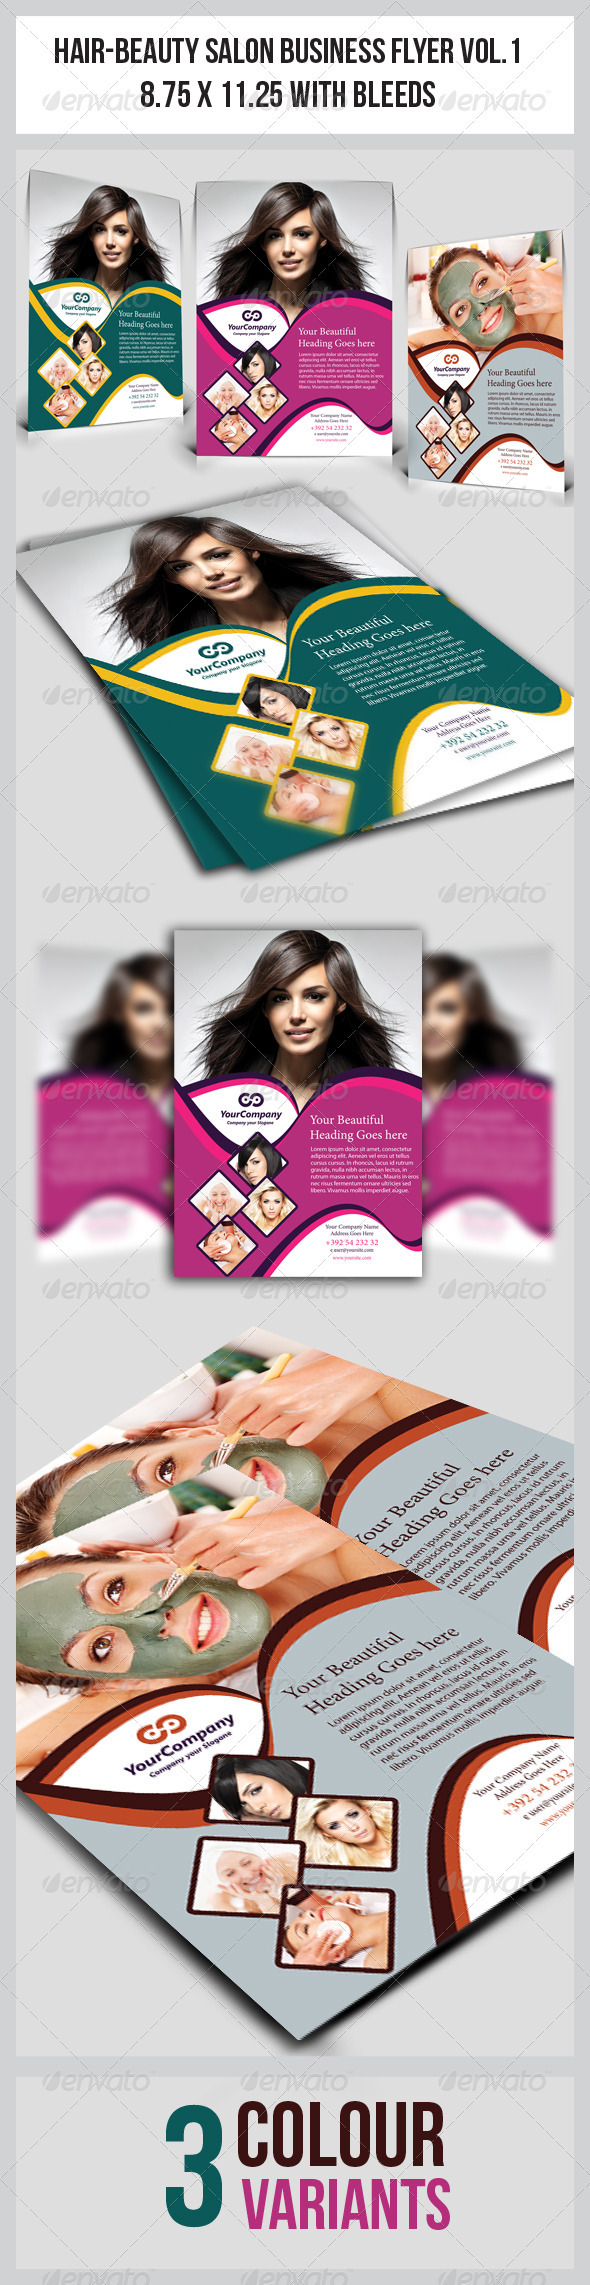 Hair & Beauty Salon Business  Flyer Vol.1 - Corporate Flyers